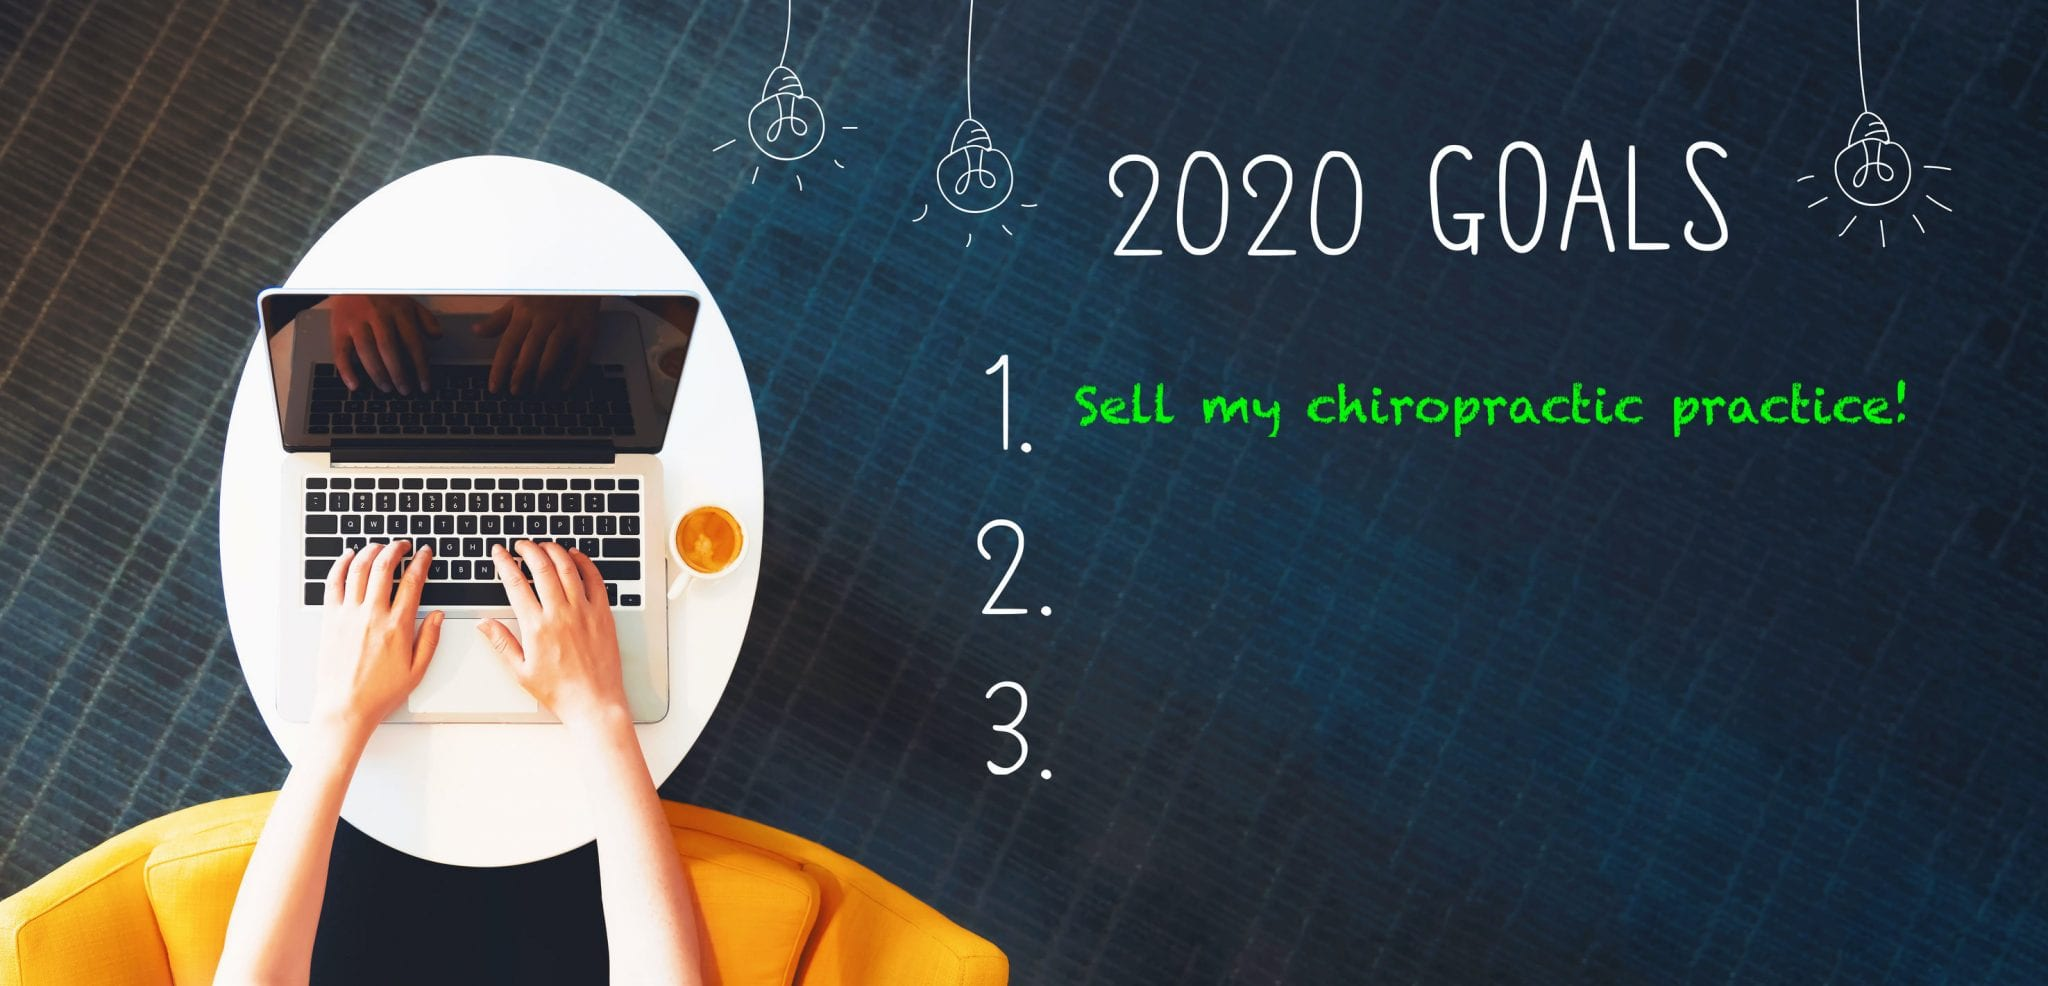 Selling a Chiropractic Practice in 2020? Why This Year is Shaping Up to Be an Excellent Time For Your Chiropractic Business Sale